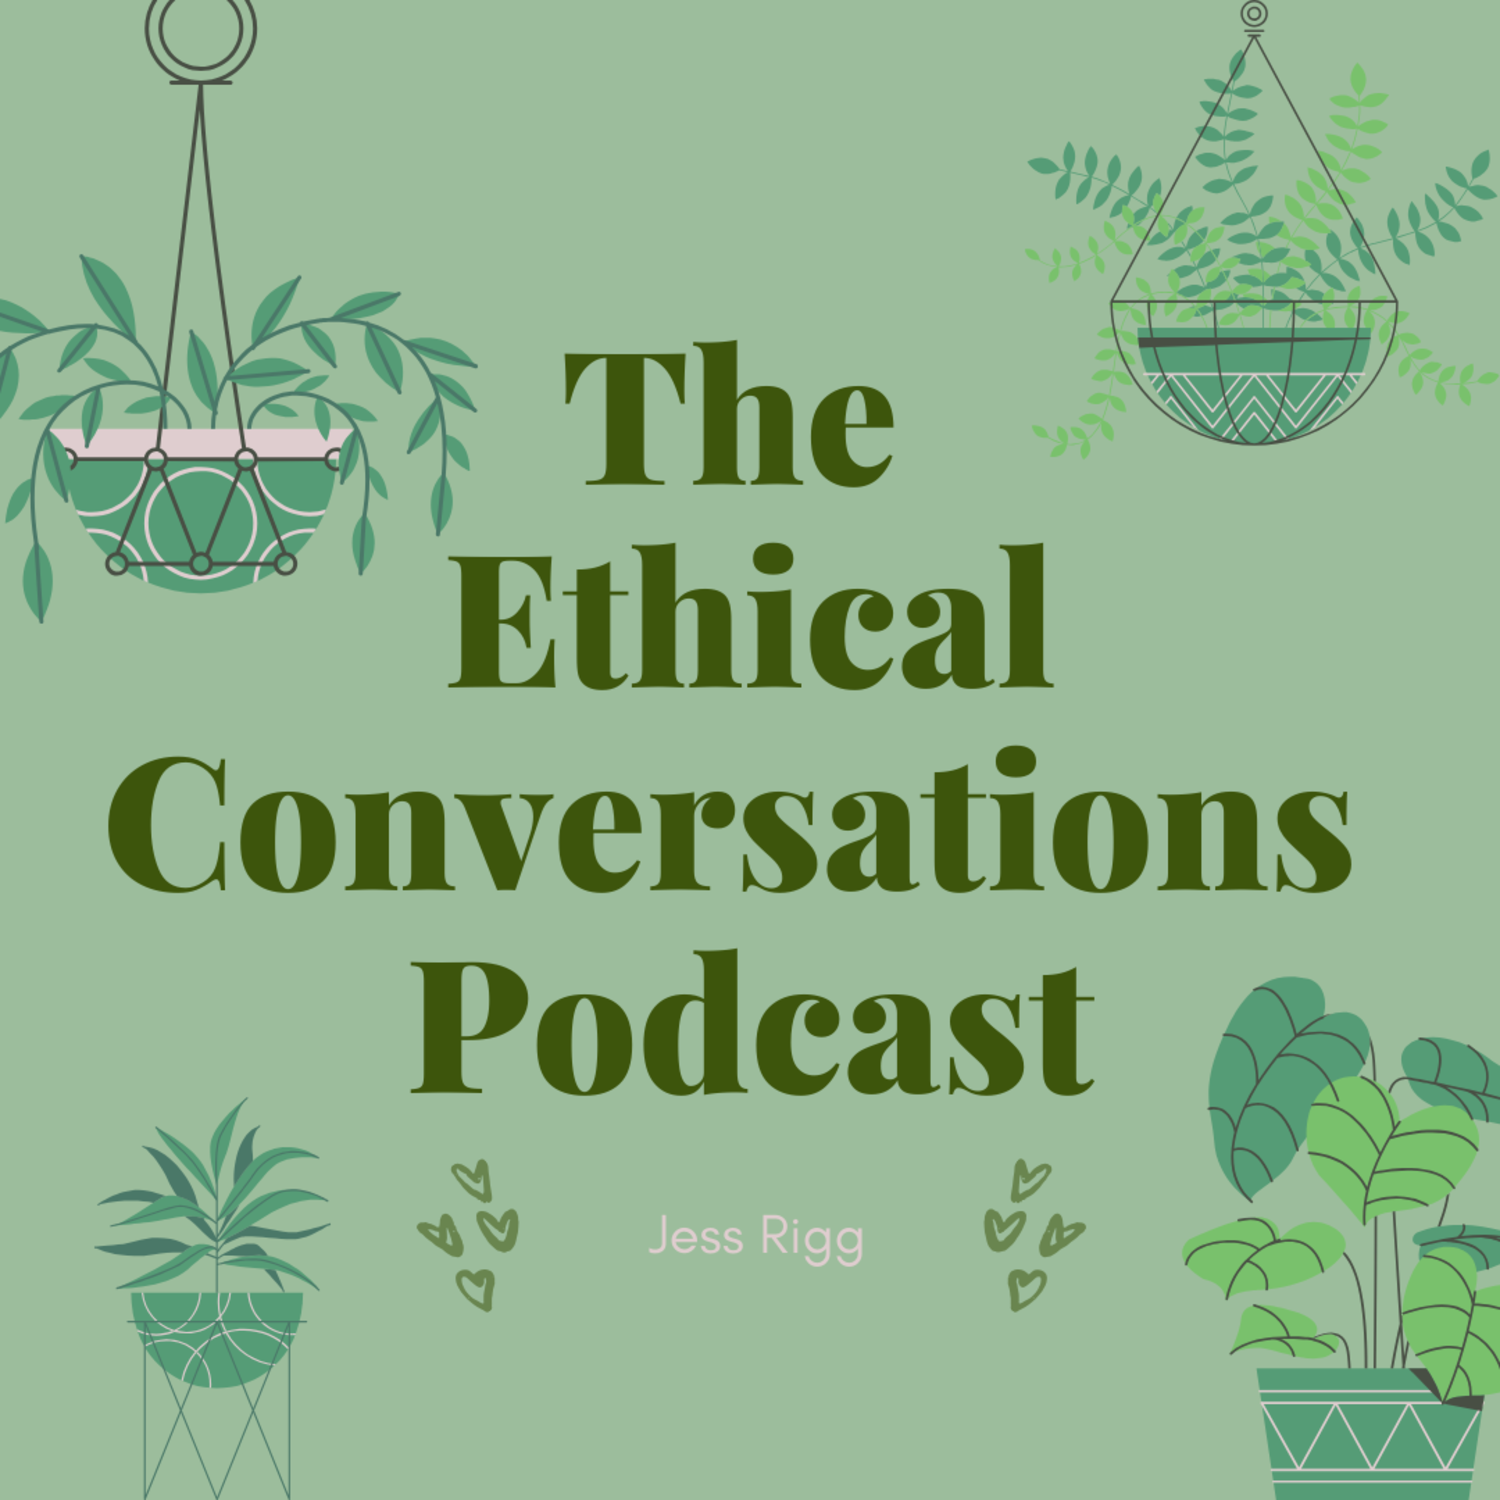 The Ethical Conversations Podcast